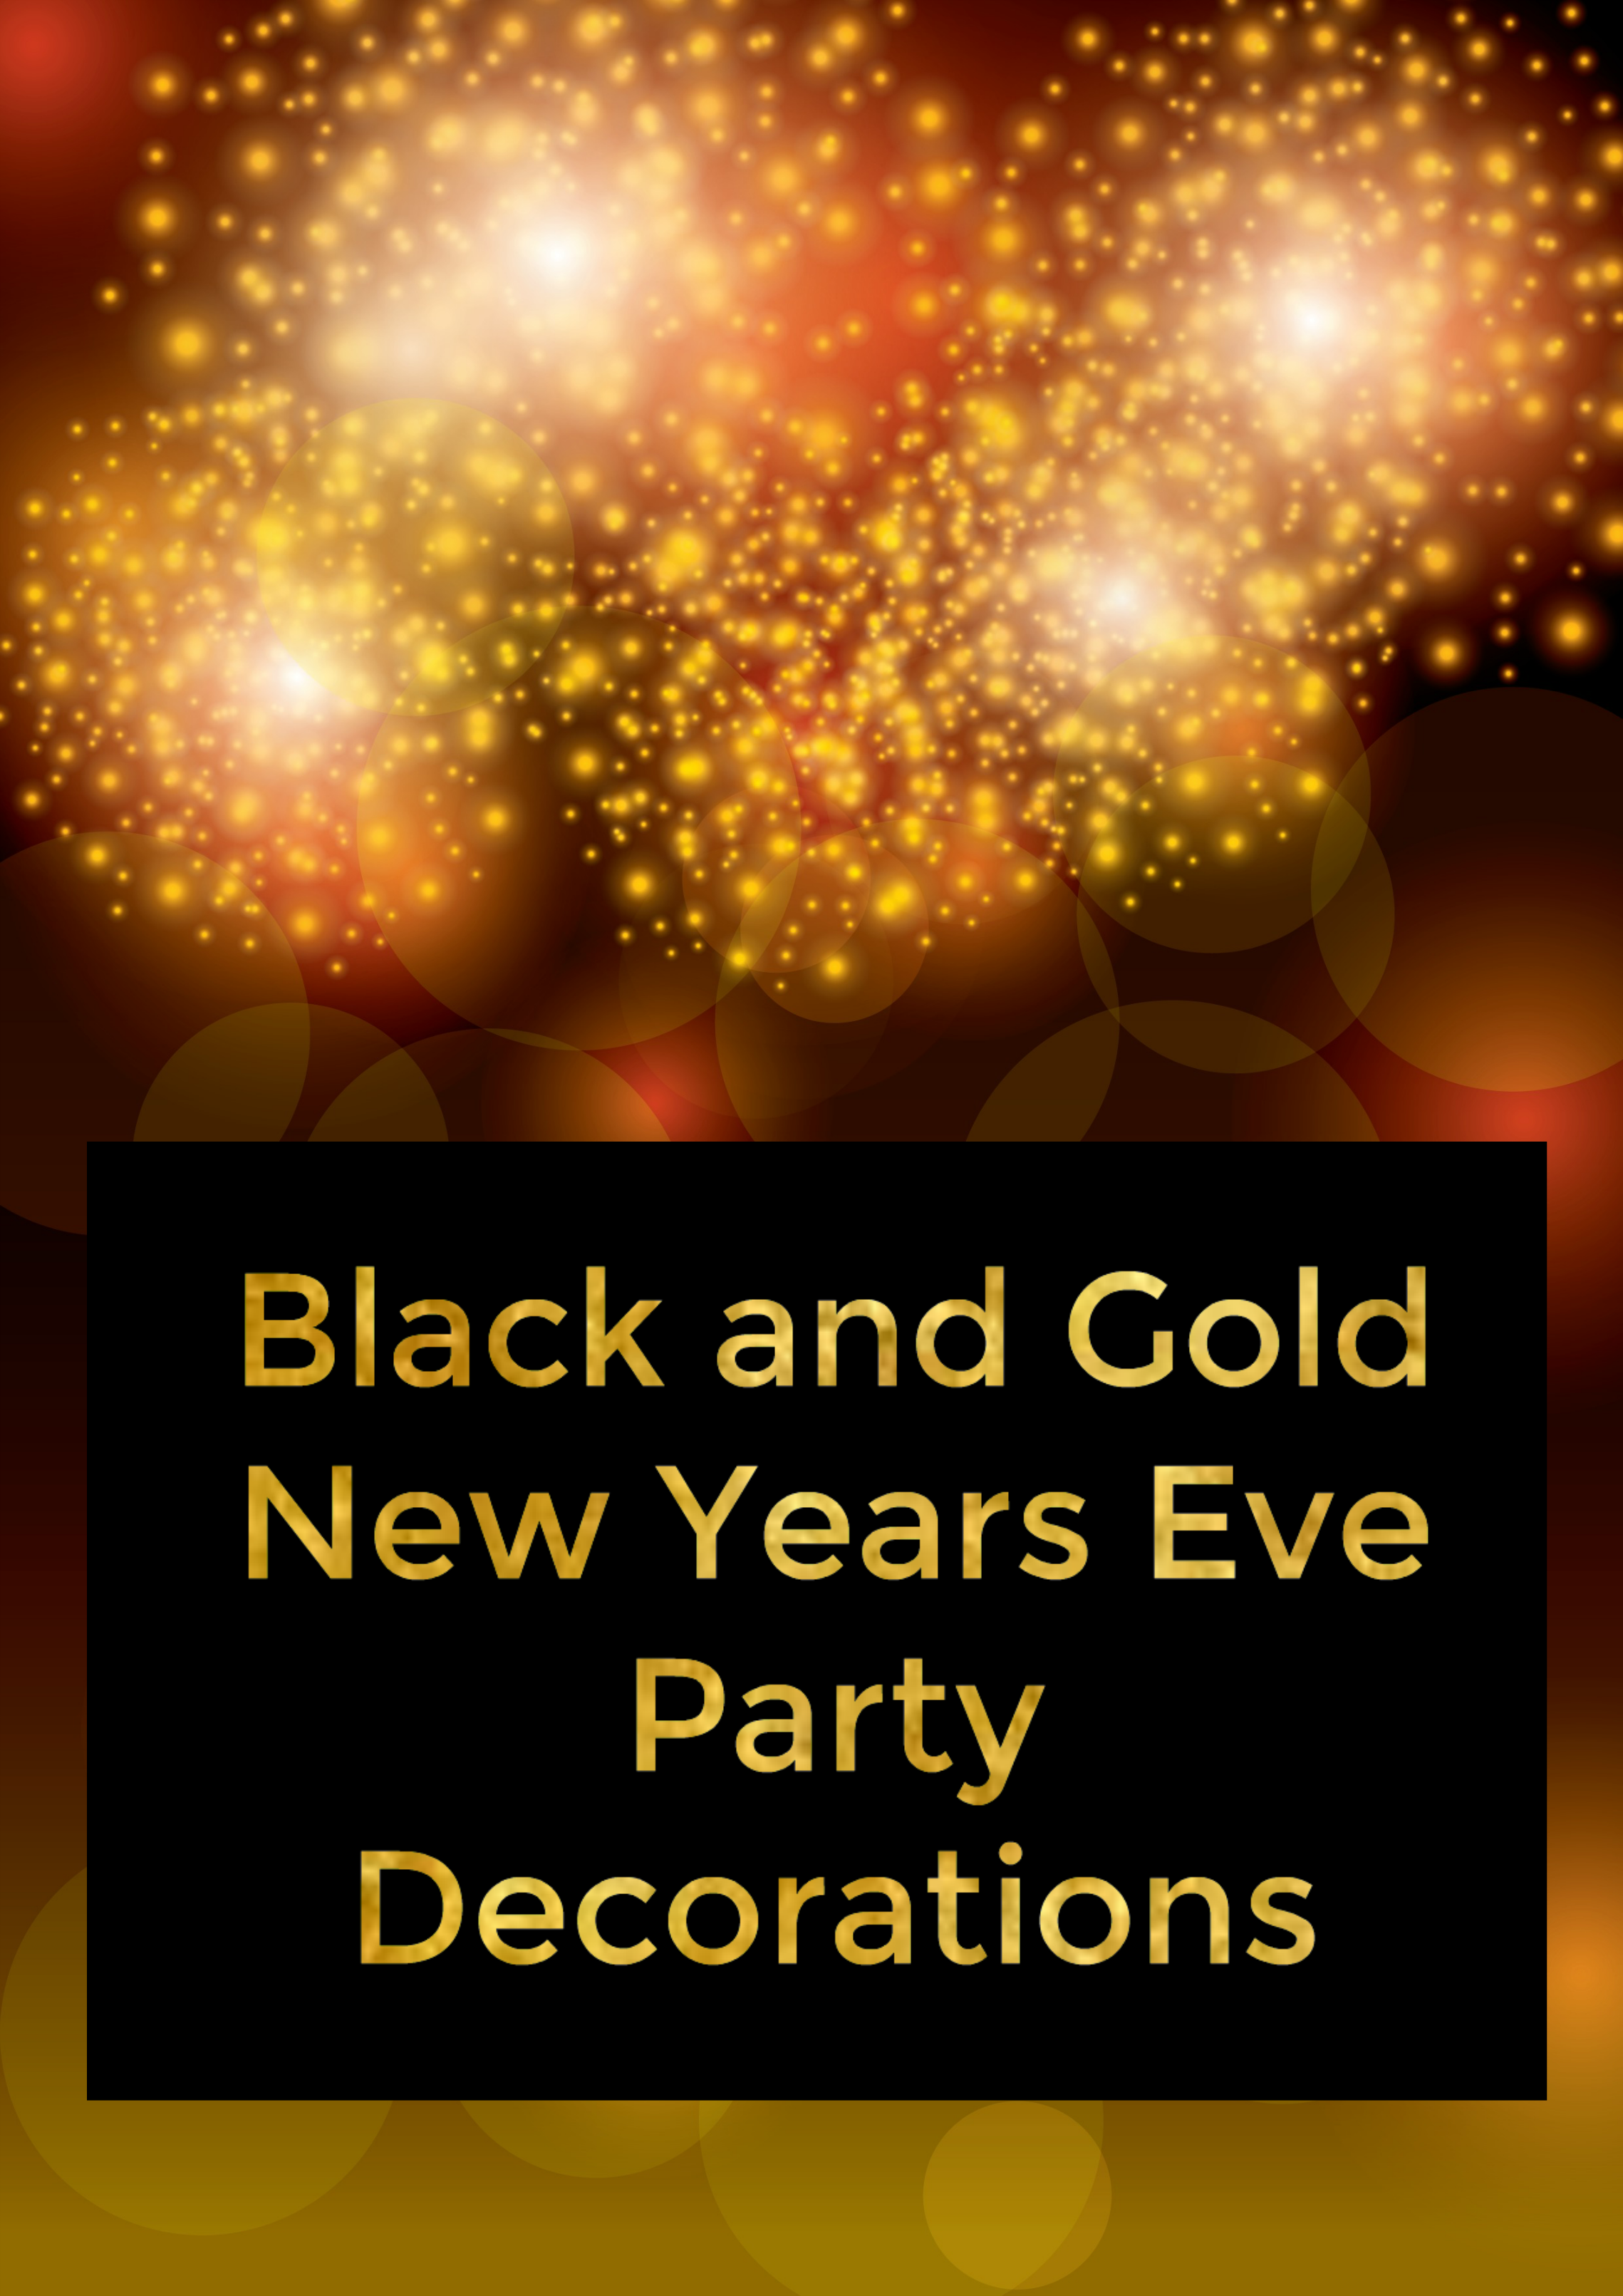 Black and Gold New Years Eve Party Decorations with Style ...